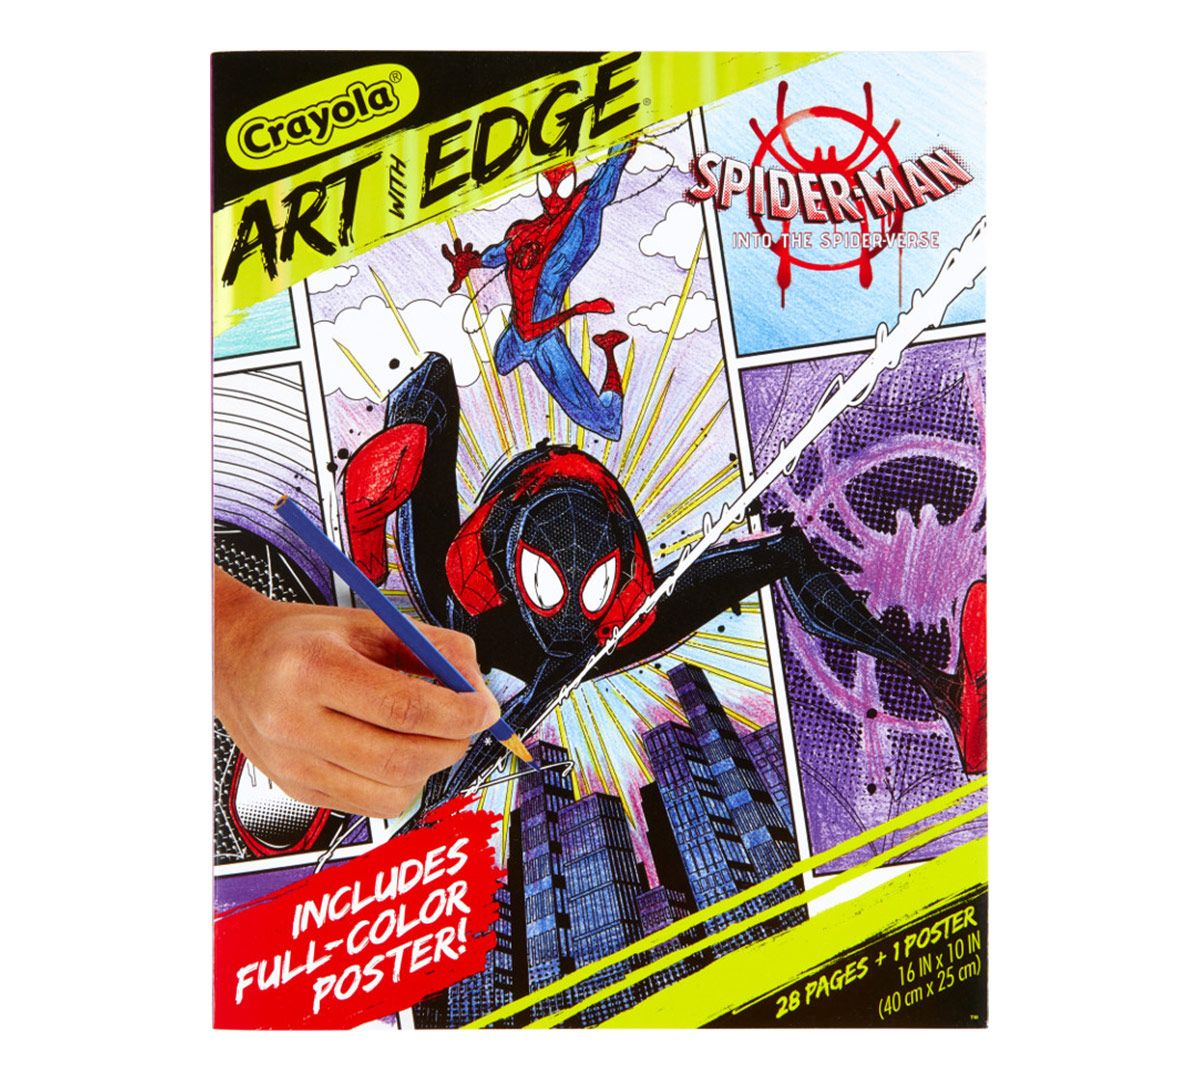 Spider Verse 28 Spiderman Coloring Pages Crayola Com Crayola Spiderman Coloring Coloring Books Spiderman Gifts